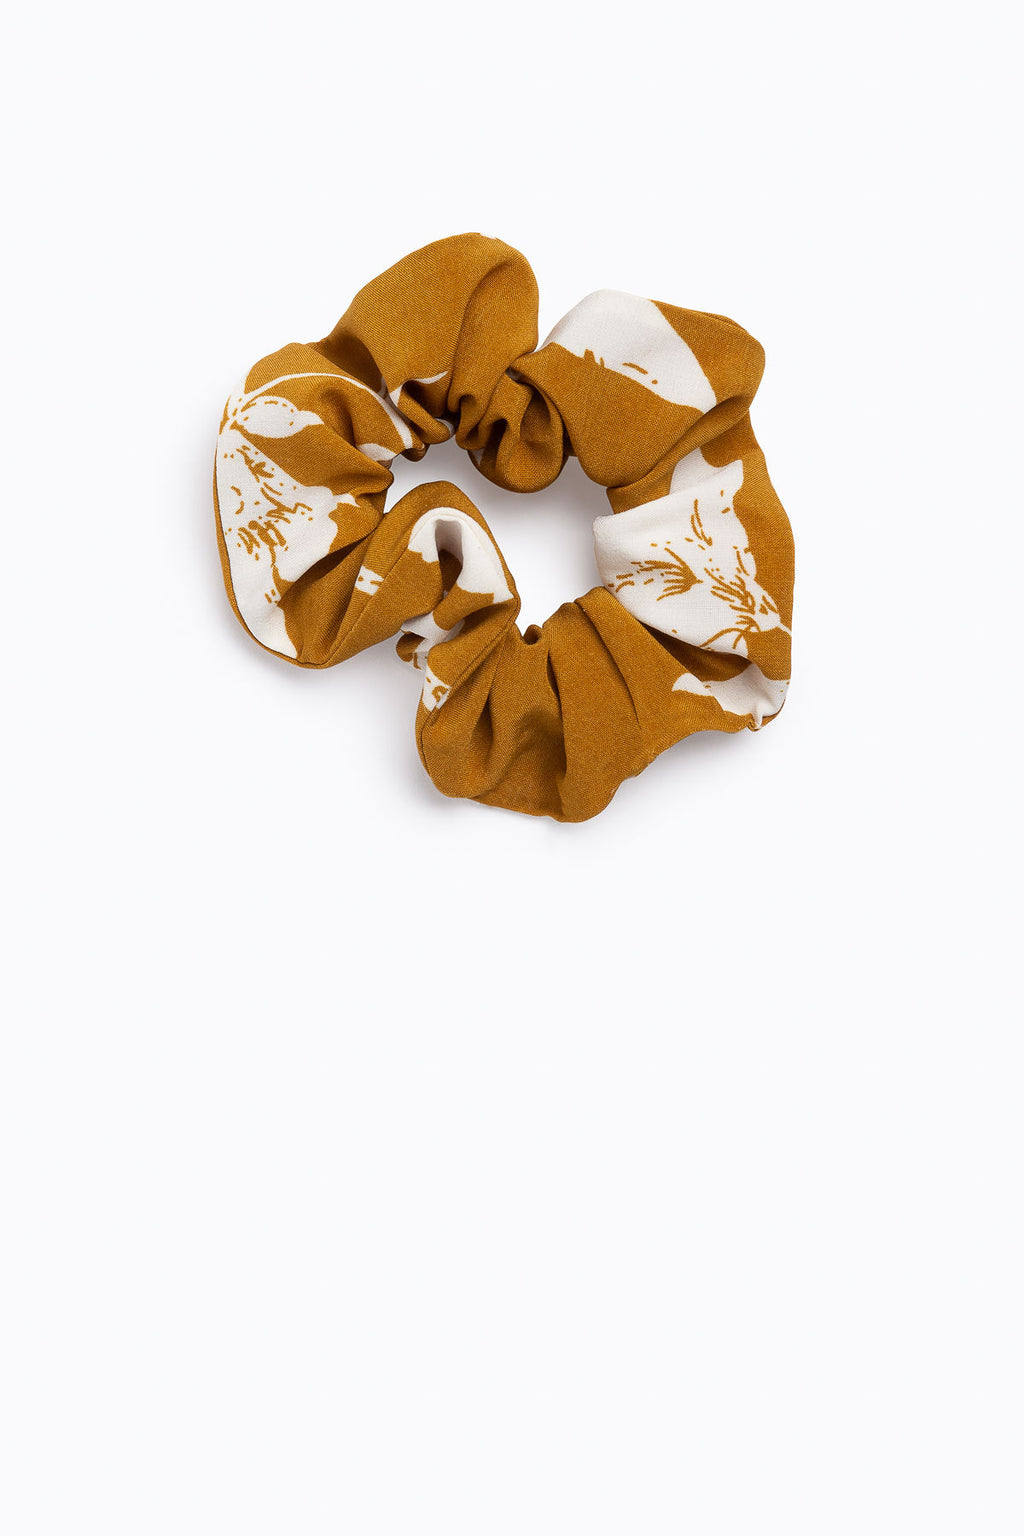 Floral Cotton and Tan Scrunchies in Floral Tan